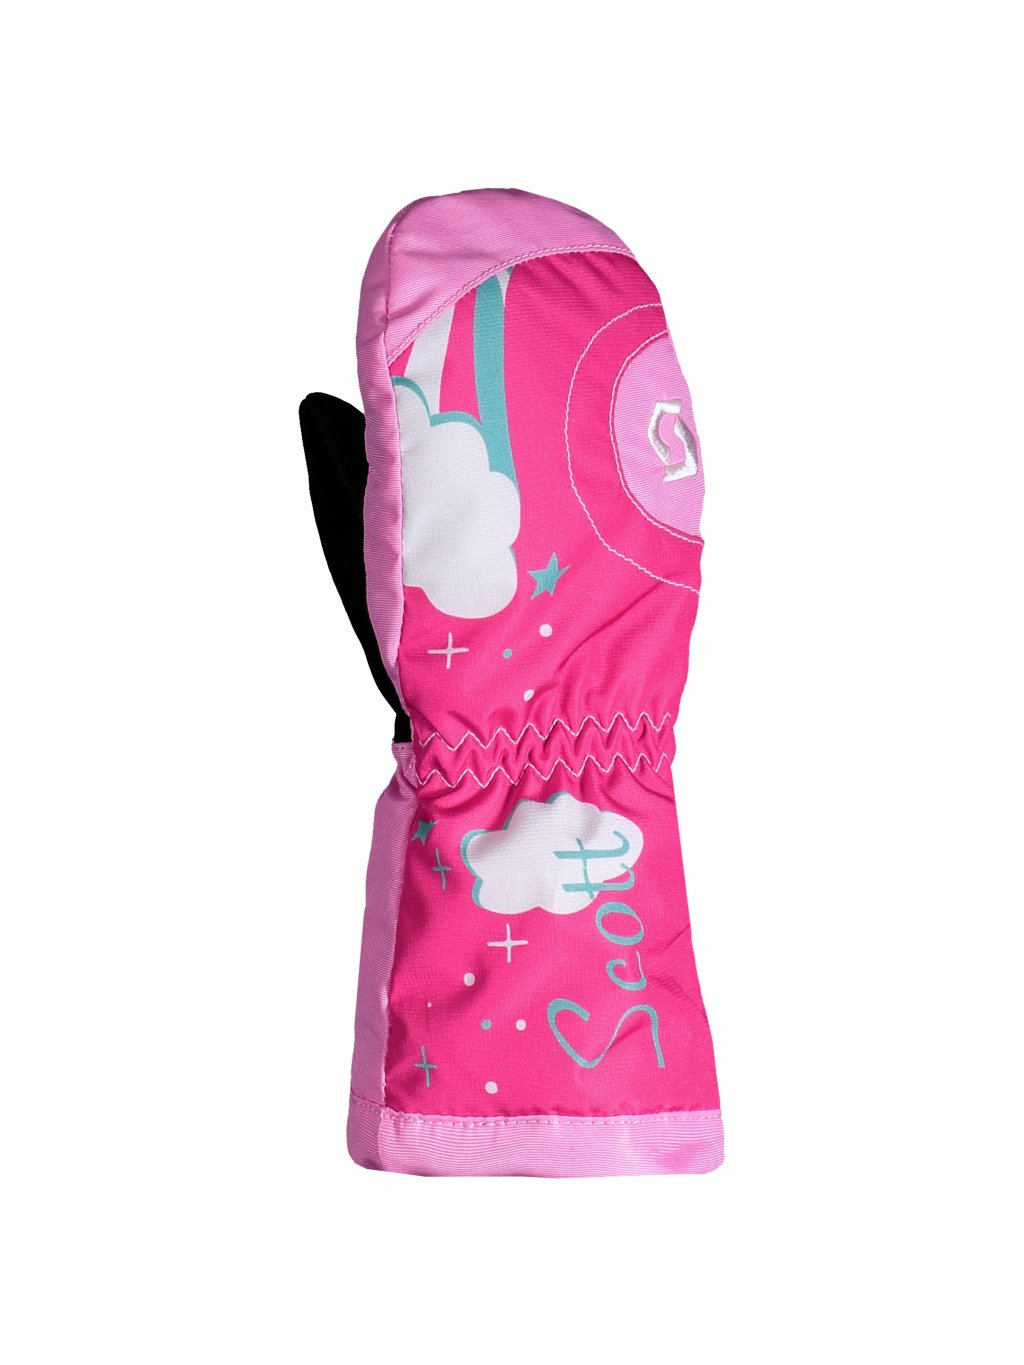 SCOTT Mitten Tot JR Ultimate, pink